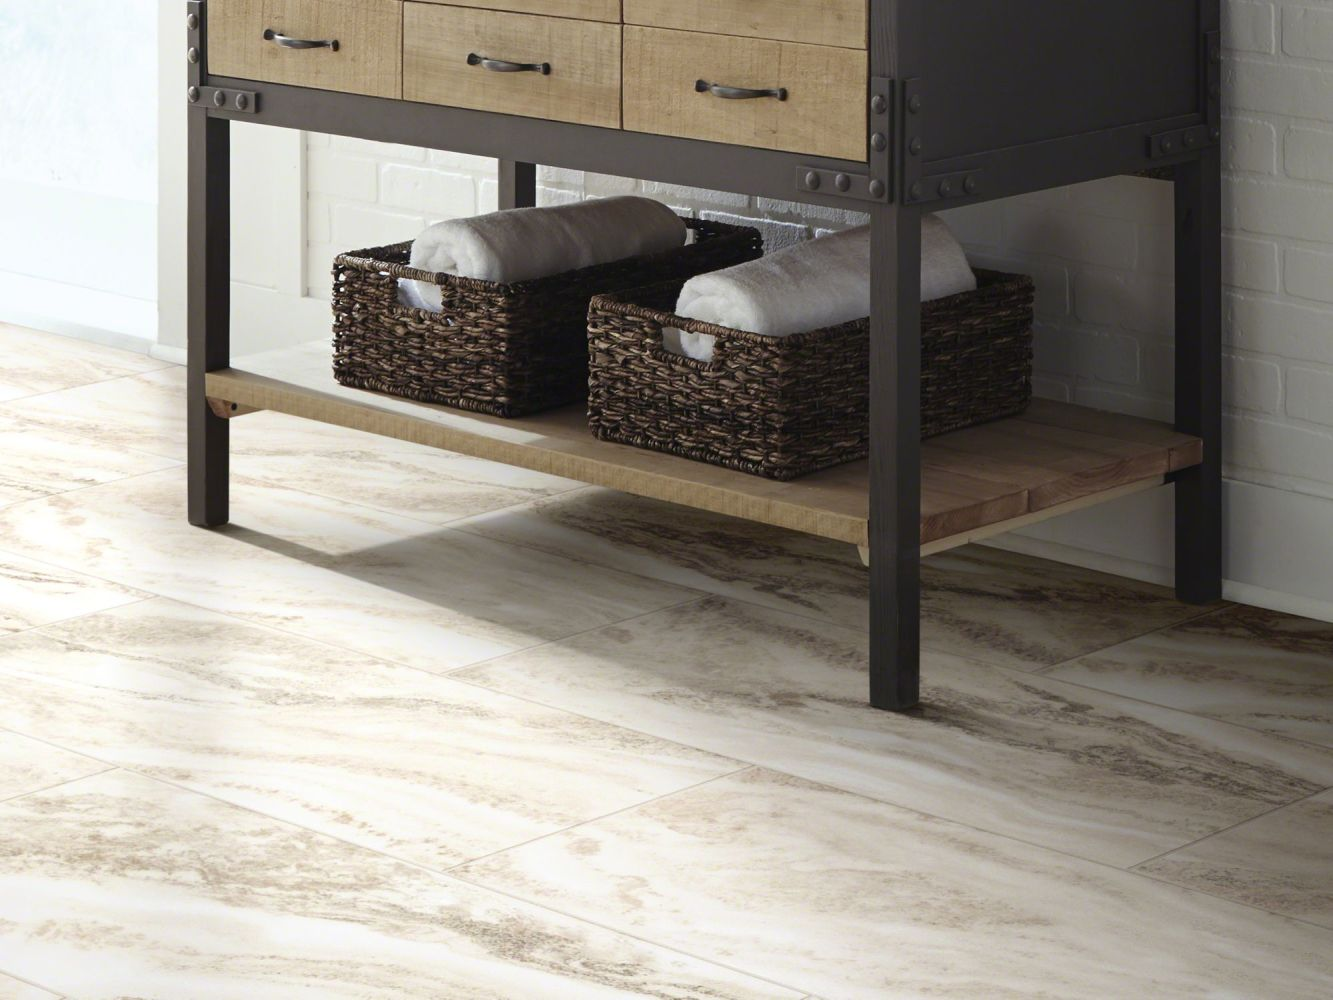 Shaw Floors Vinyl Residential Fairmount Ti 20 Sandy Trail 00239_0414V